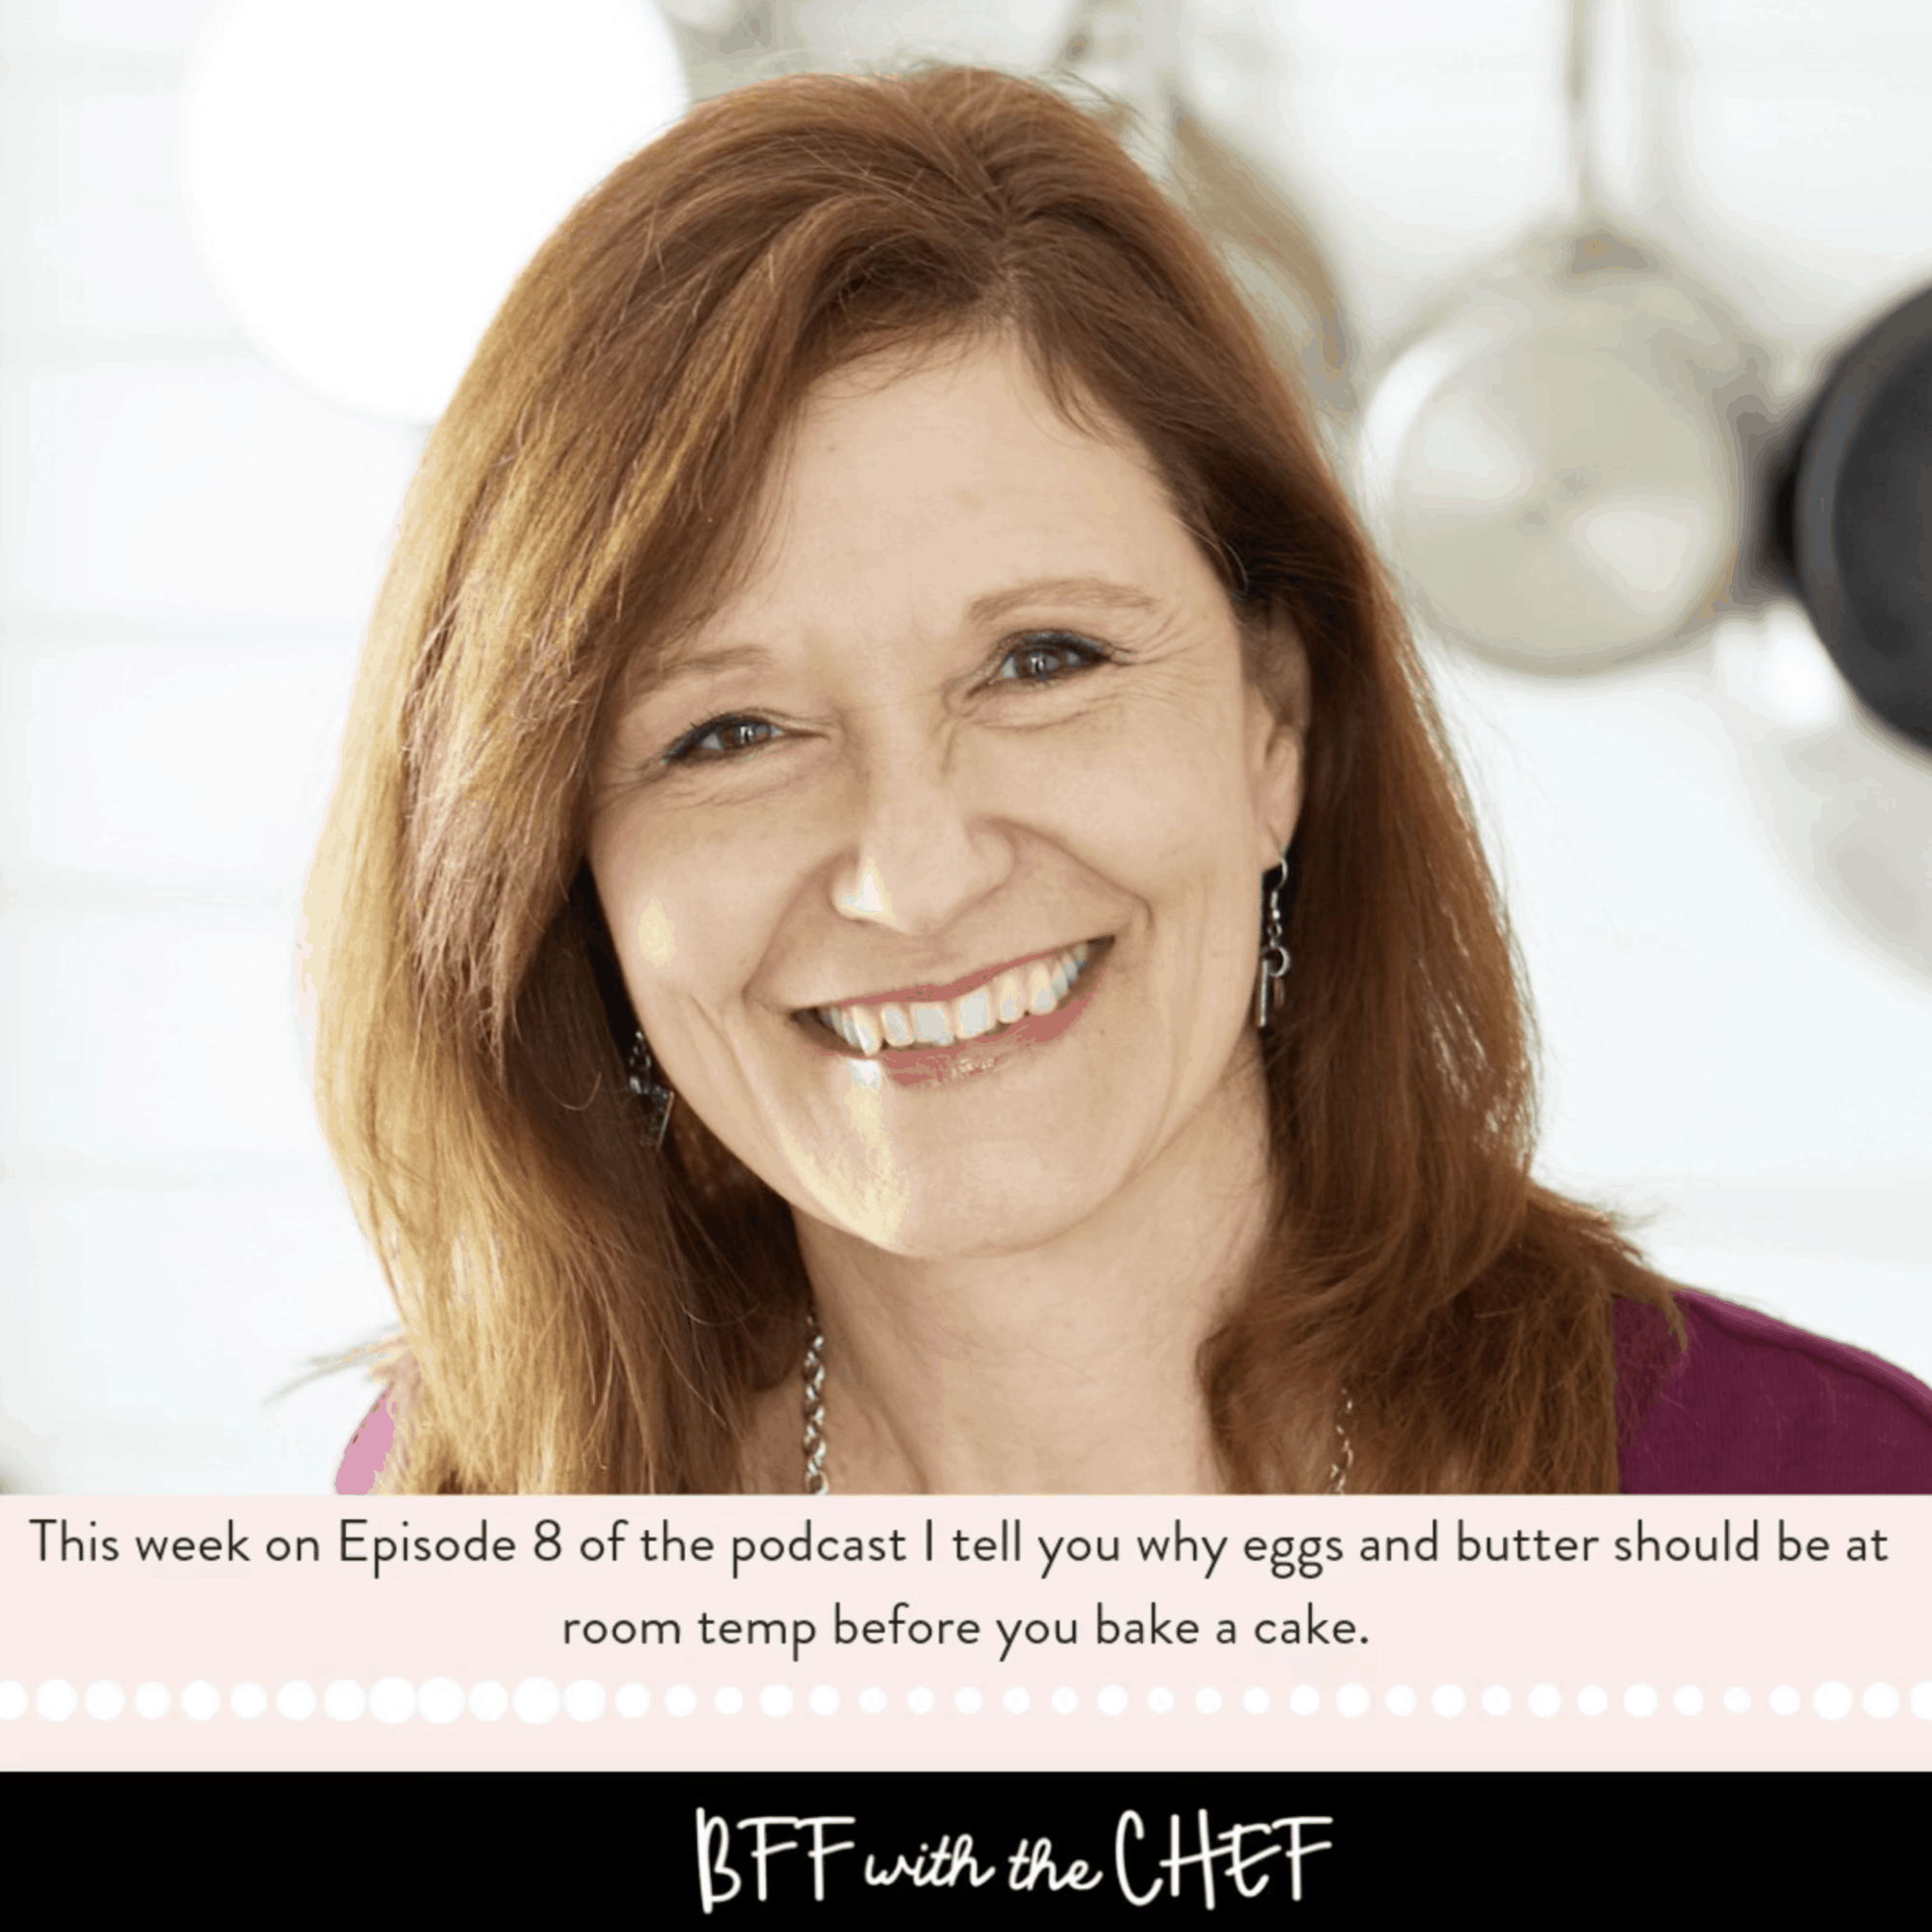 Quote from GritsAndGouda.com's Kathleen Royal Phillips on BFF with the Chef podcast Episode 8 photograph